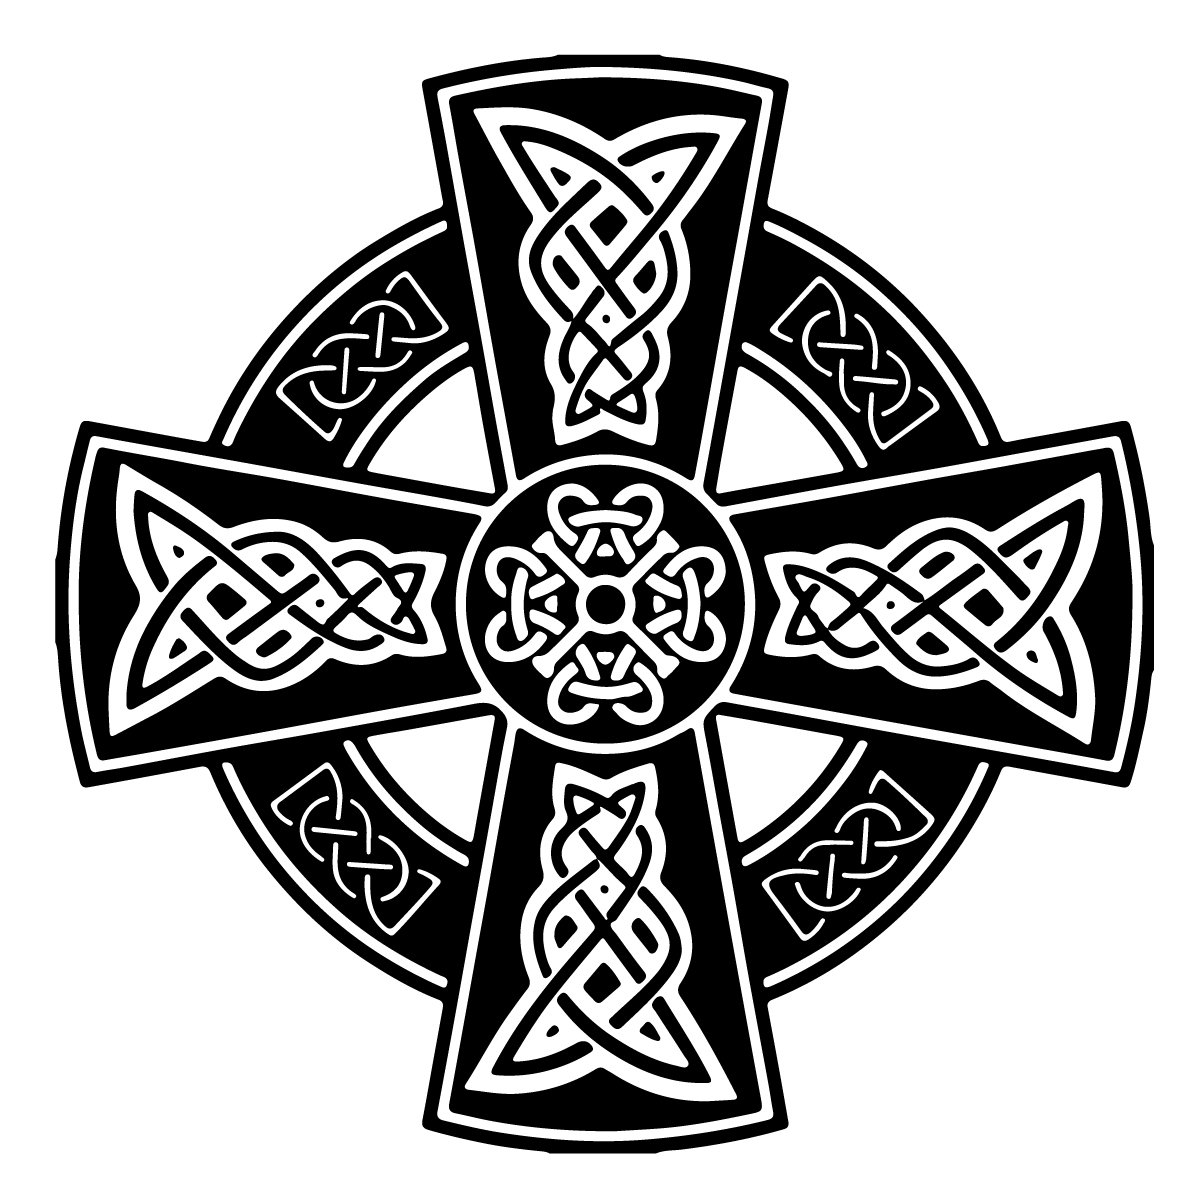 Celtic symbols and their meanings mythologian there are many theories regarding the origin of the symbol although none of them could be and possibly never will be confirmed biocorpaavc Gallery